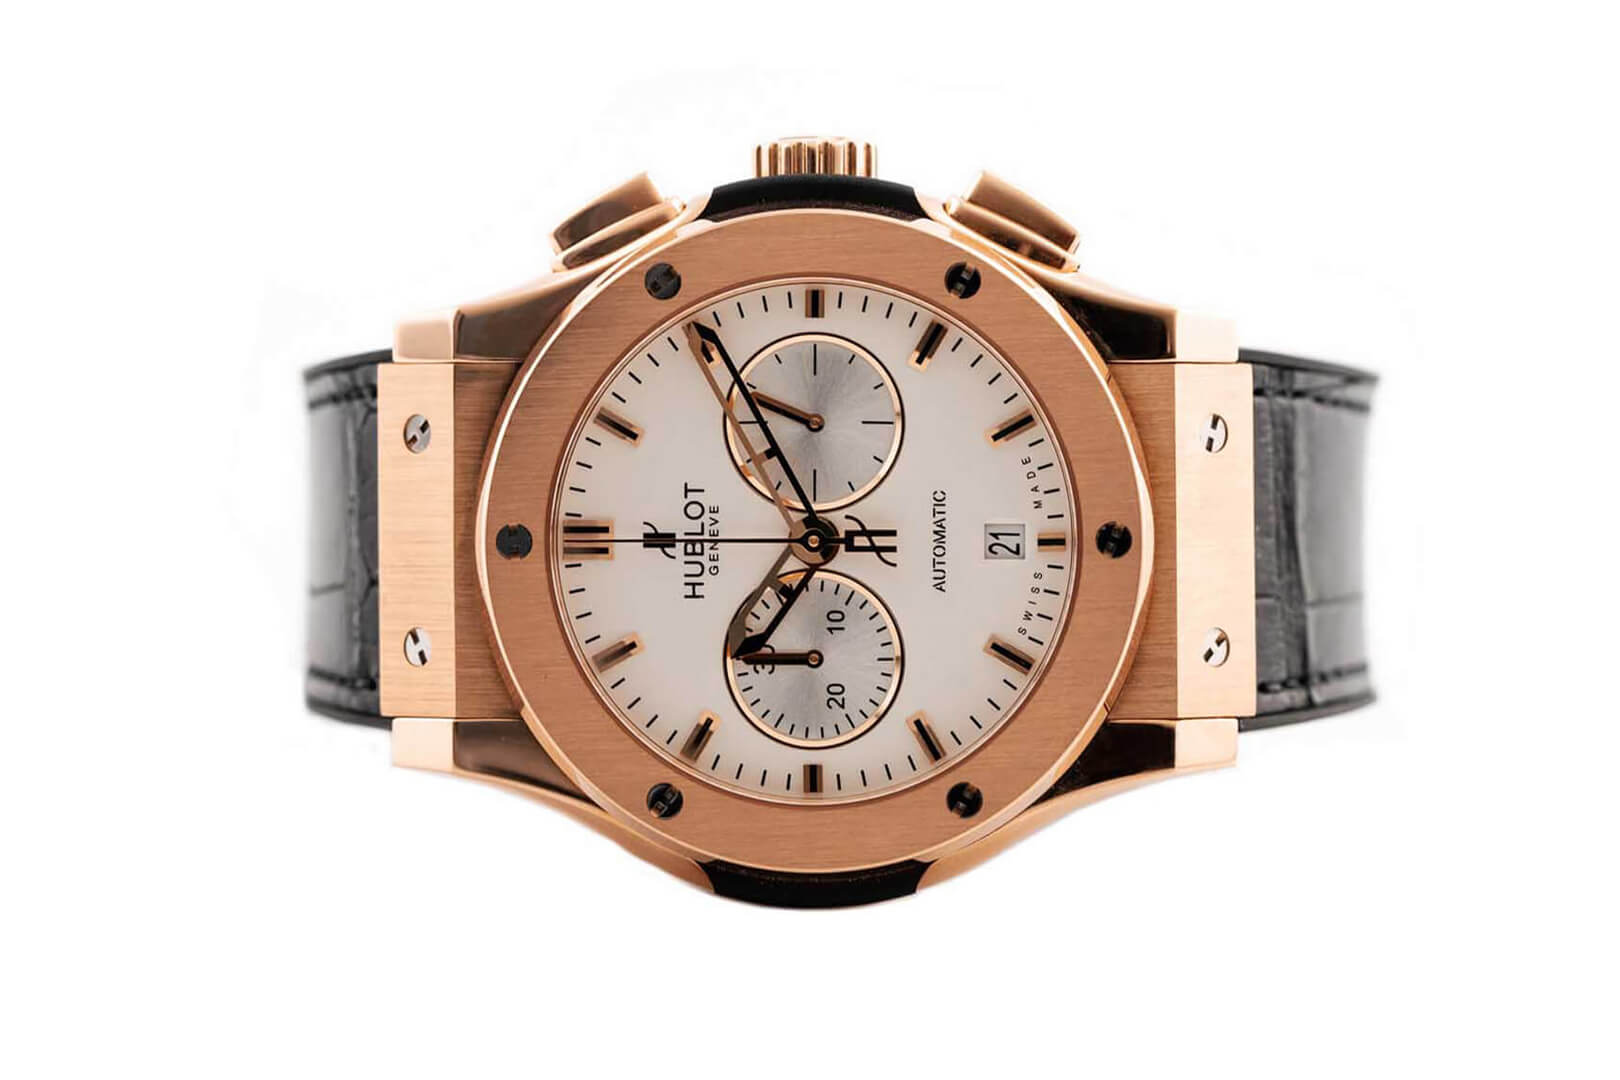 Đồng Hồ Hublot Classic Fusion Chronograph King Gold Opalin 42mm 541.OX.2610.LR